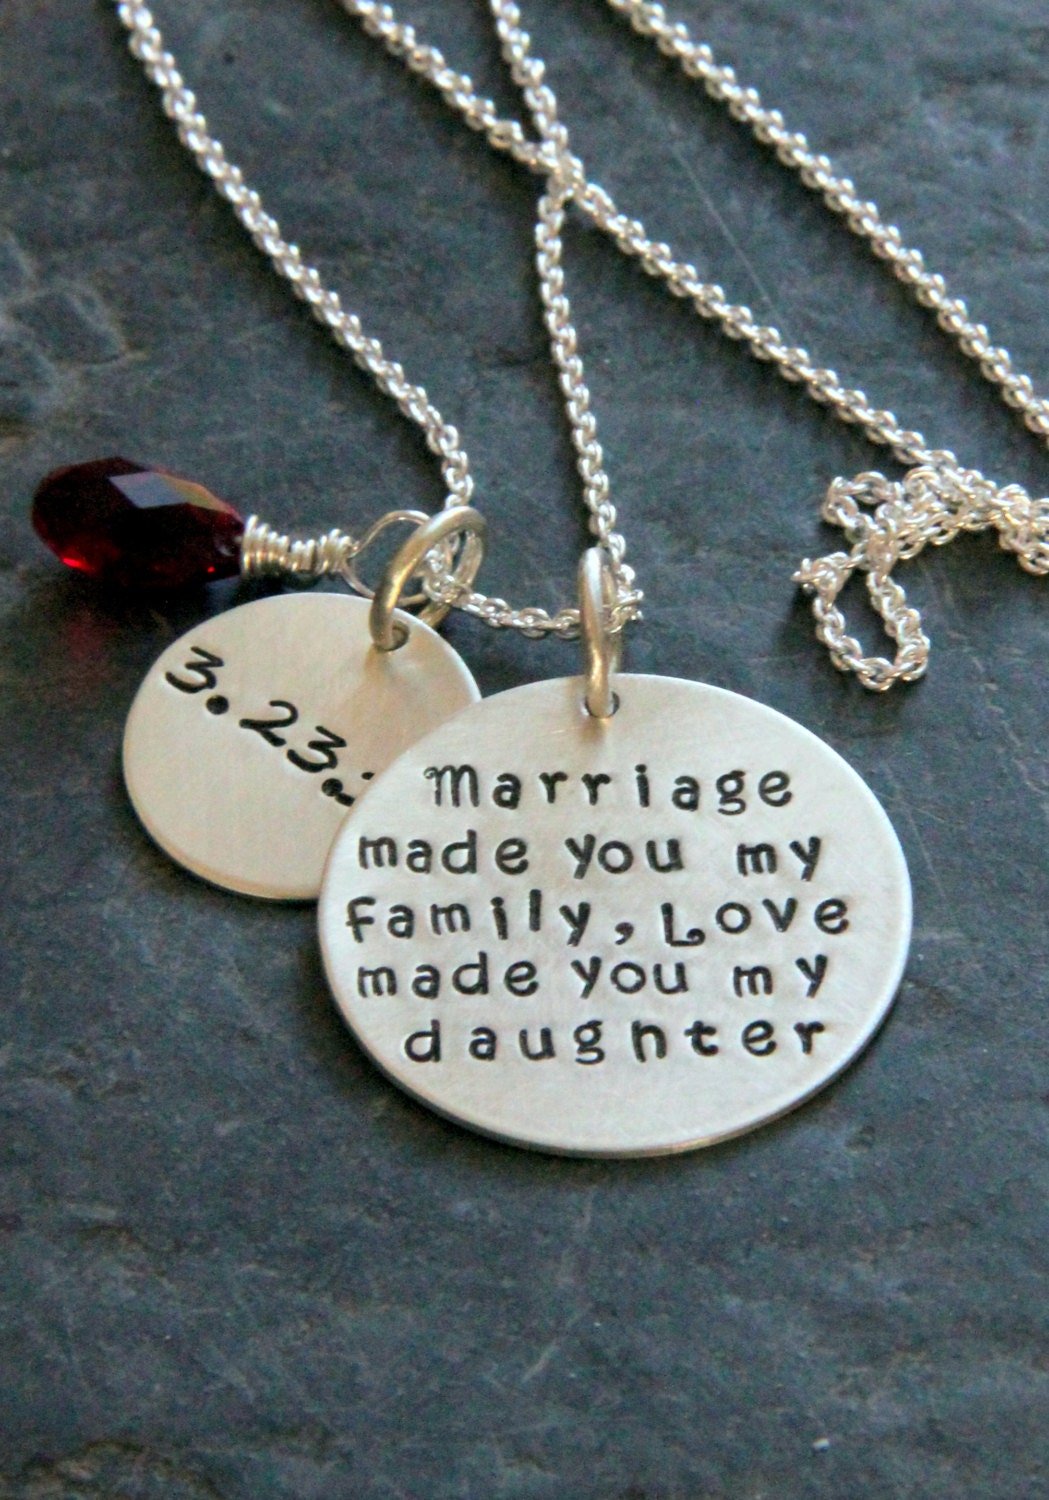 Gift For Daughter In Law Marriage Made You My by whiteliliedesigns